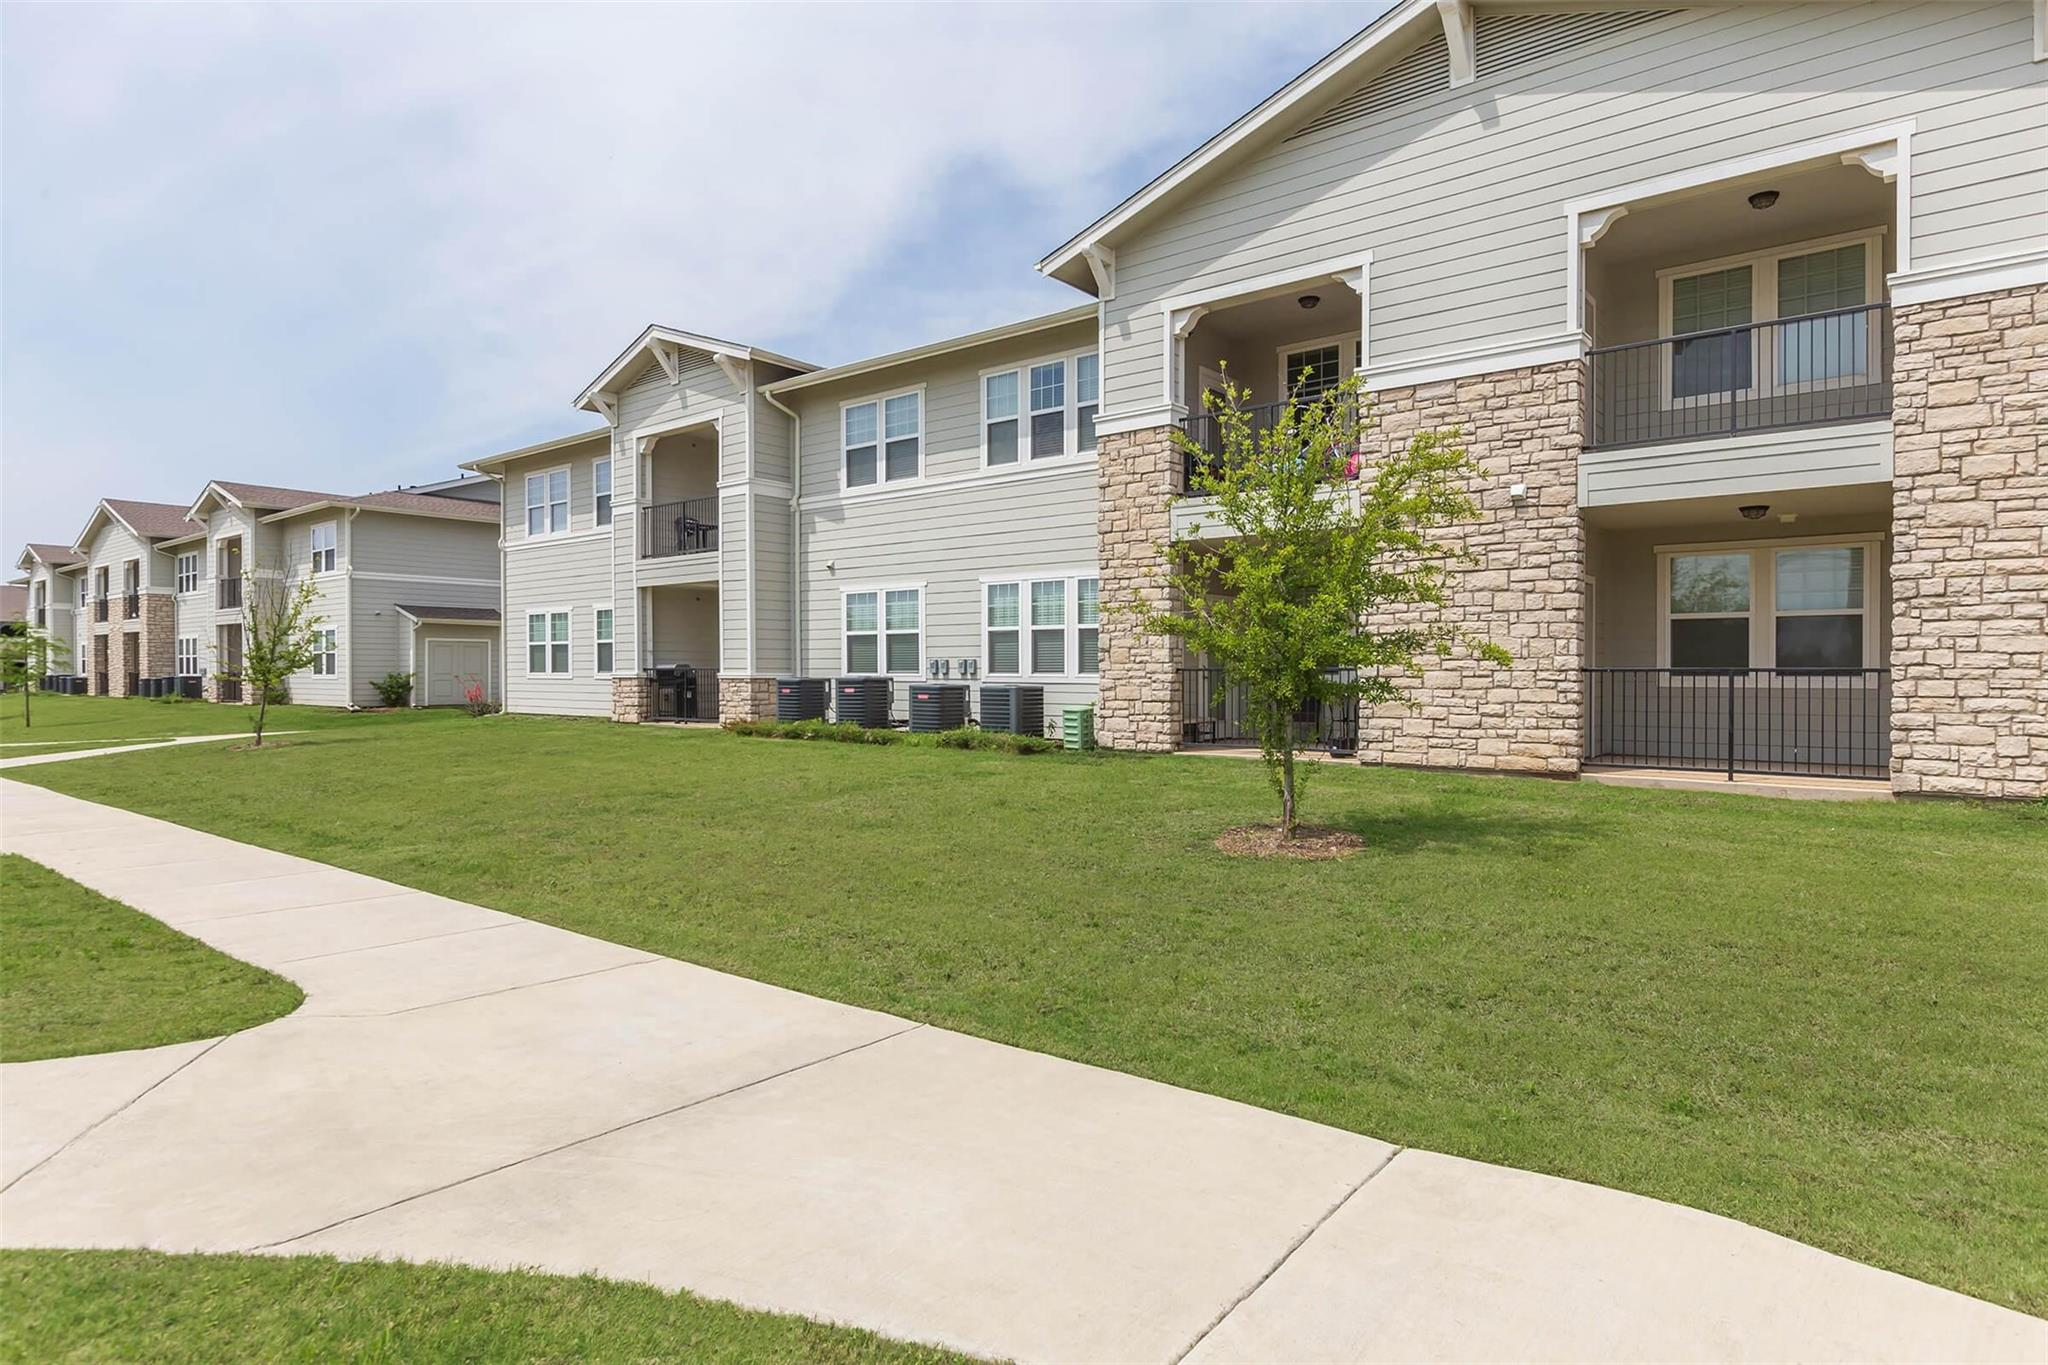 13101 Avondale Farms Road #15 Property Photo - Fort Worth, TX real estate listing